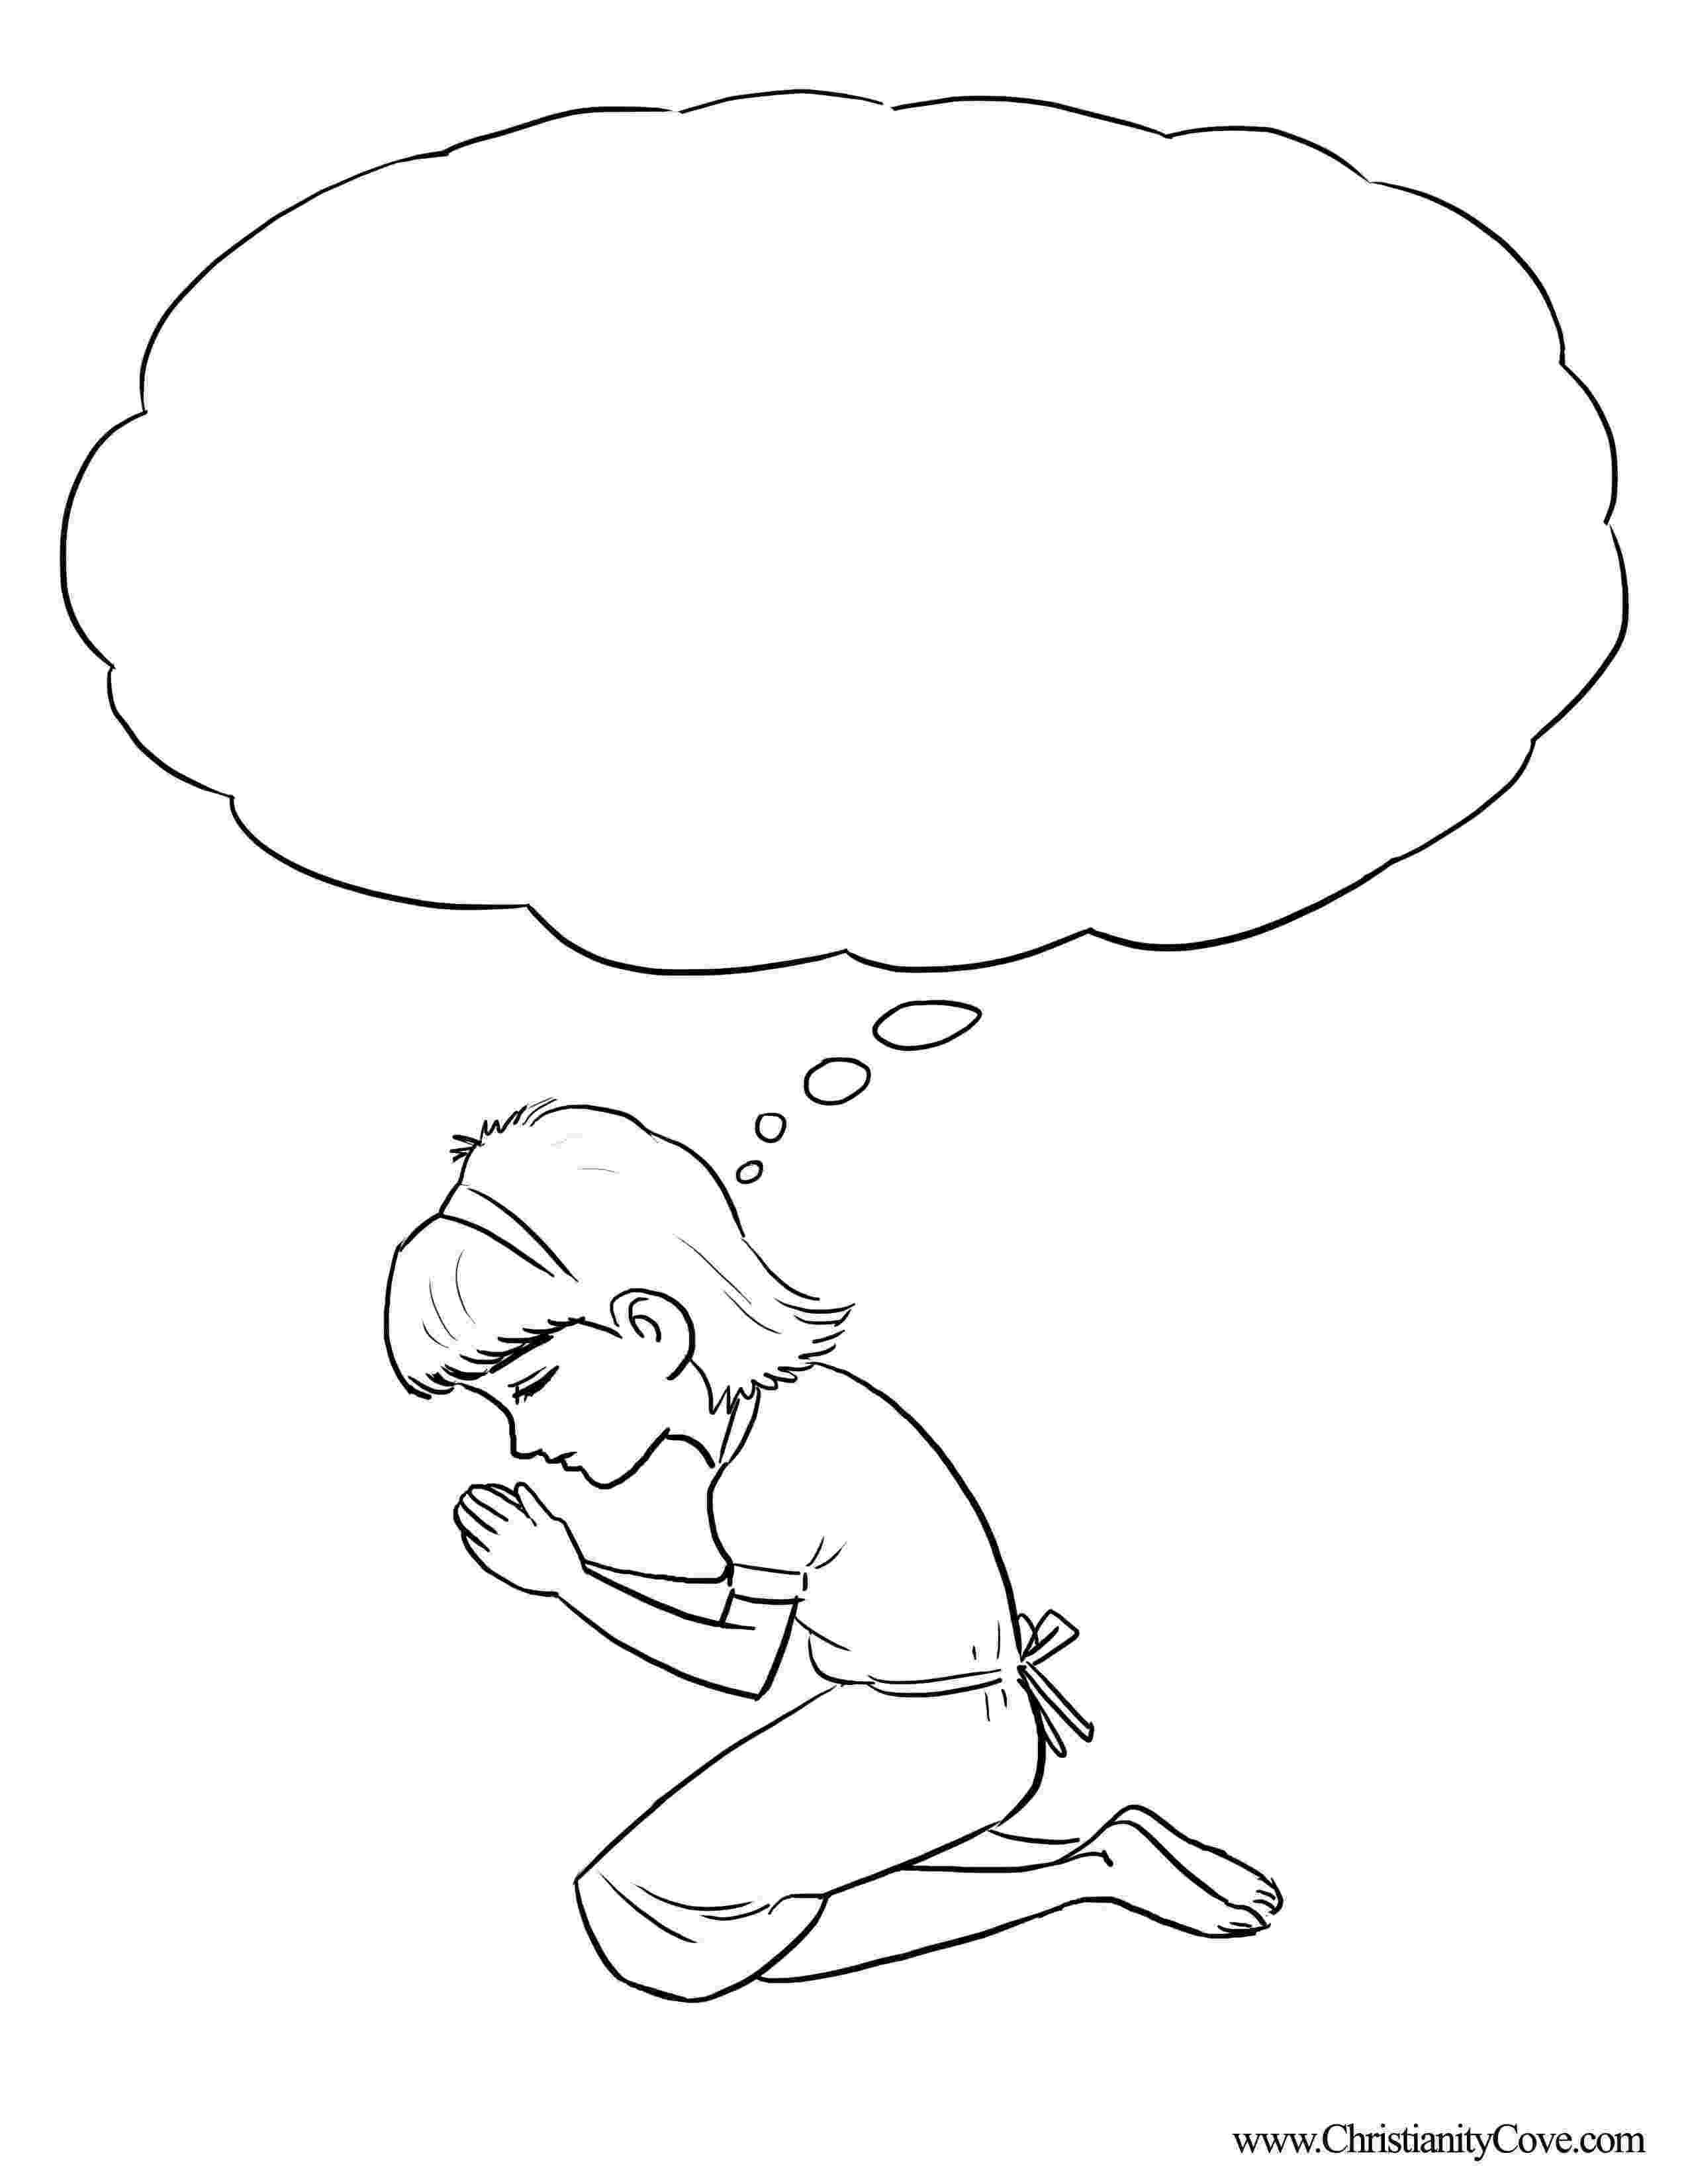 coloring pages for toddlers sunday school 17 best images about sunday school coloring sheets on toddlers coloring pages sunday school for